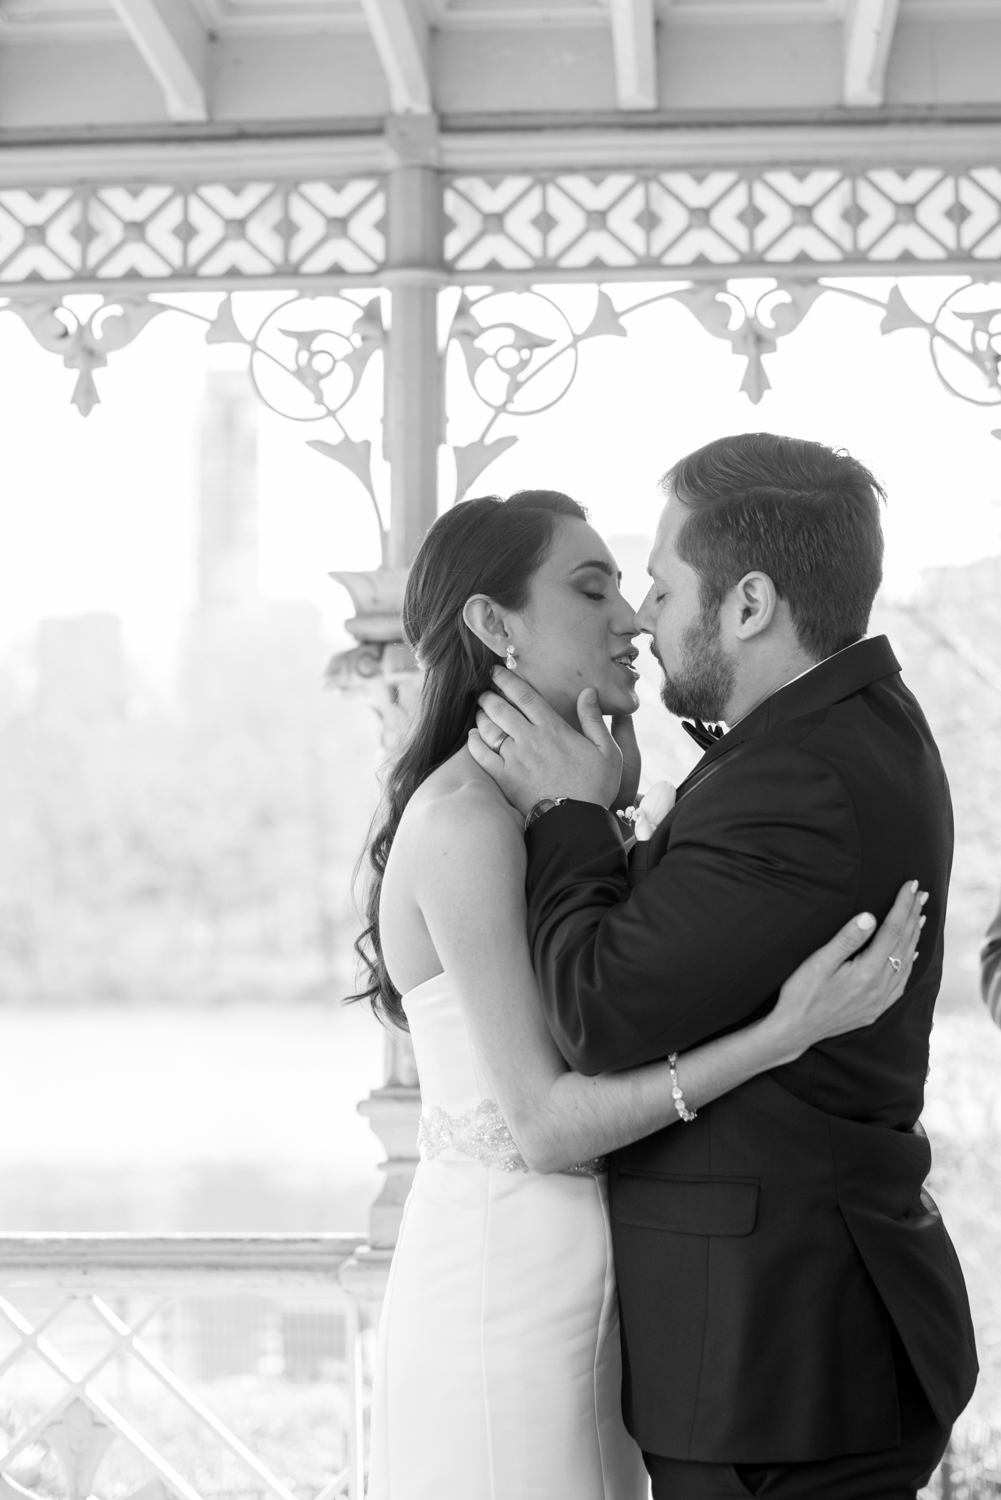 Anahi+David- Central Park Elopement- New York City- Olivia Christina Photo (159).JPG